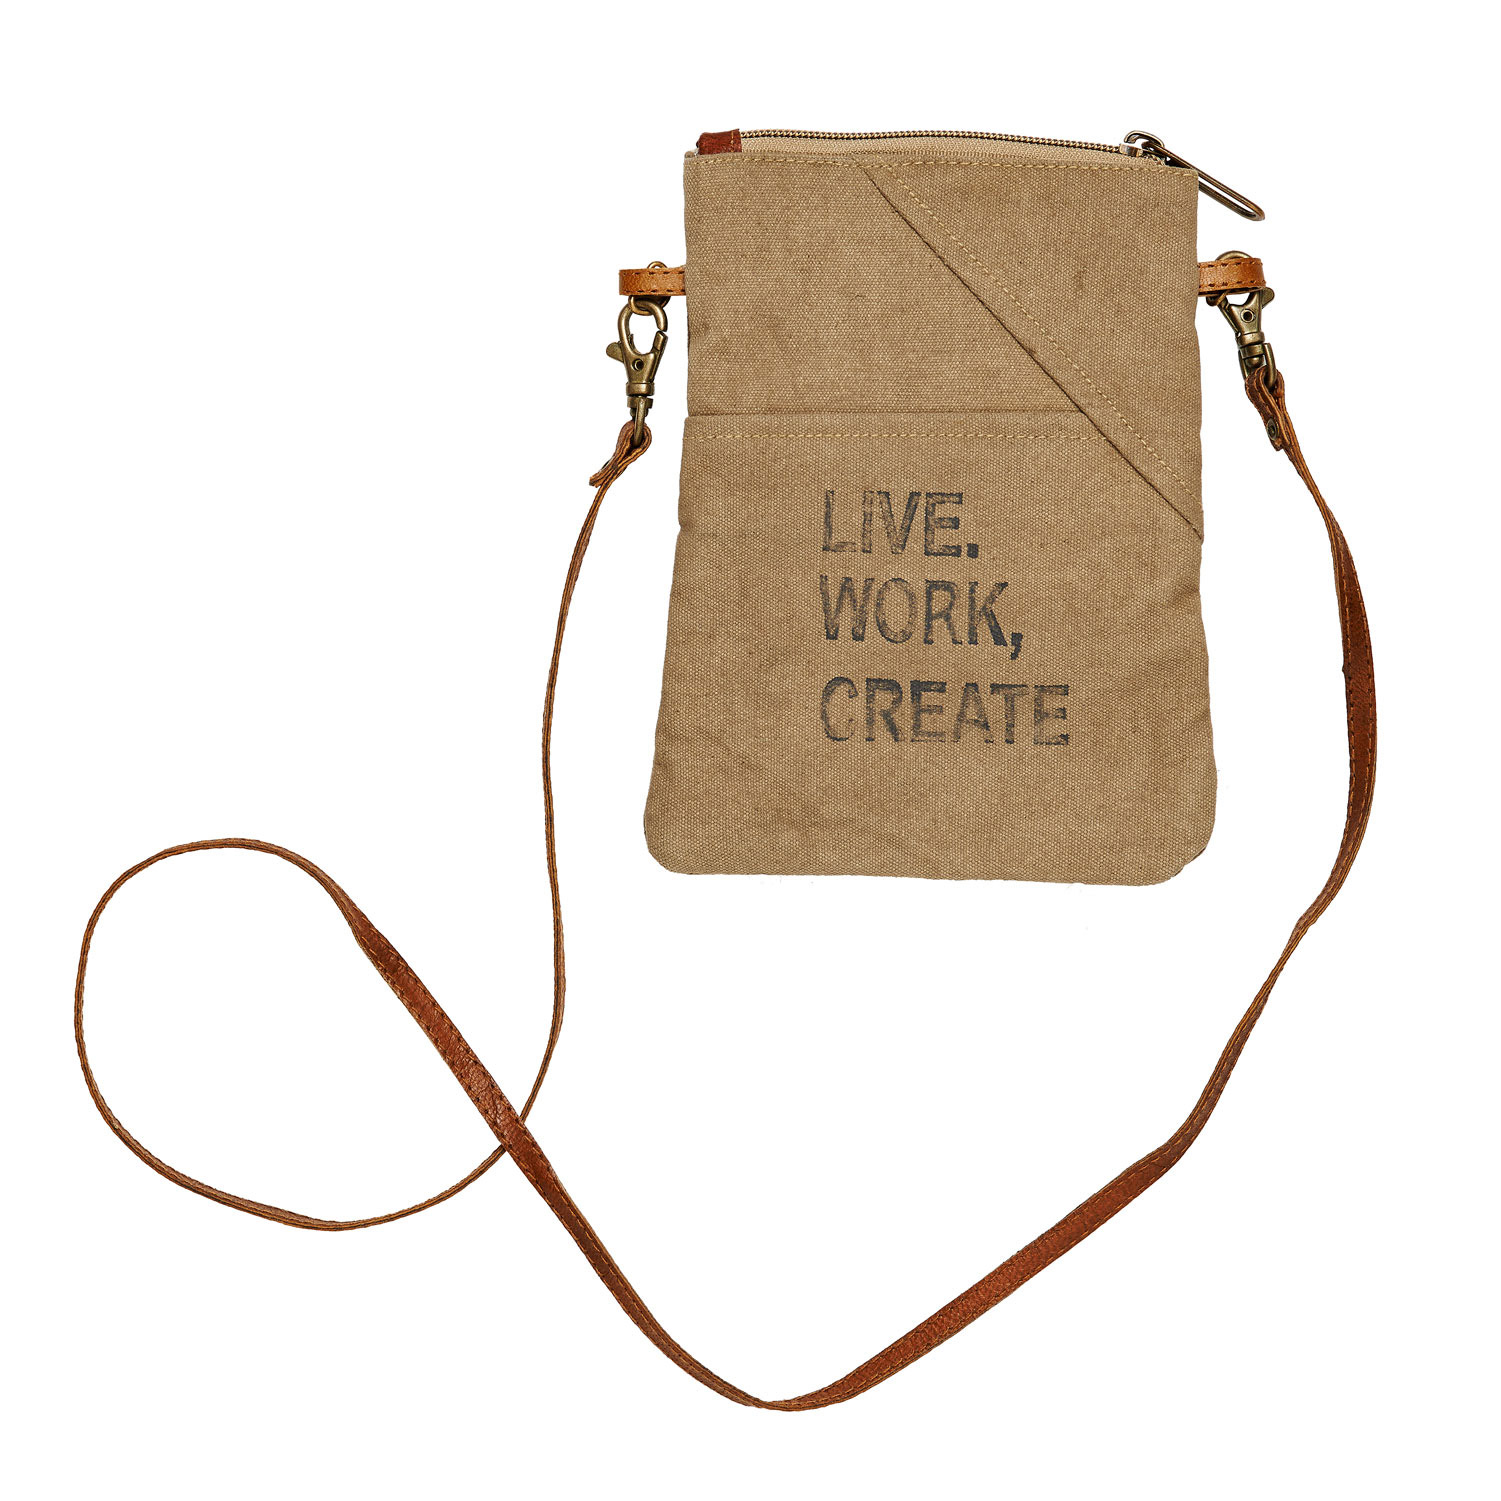 MON-2881-Small-Live-Work-Create-Crossbody-Bag-LRG